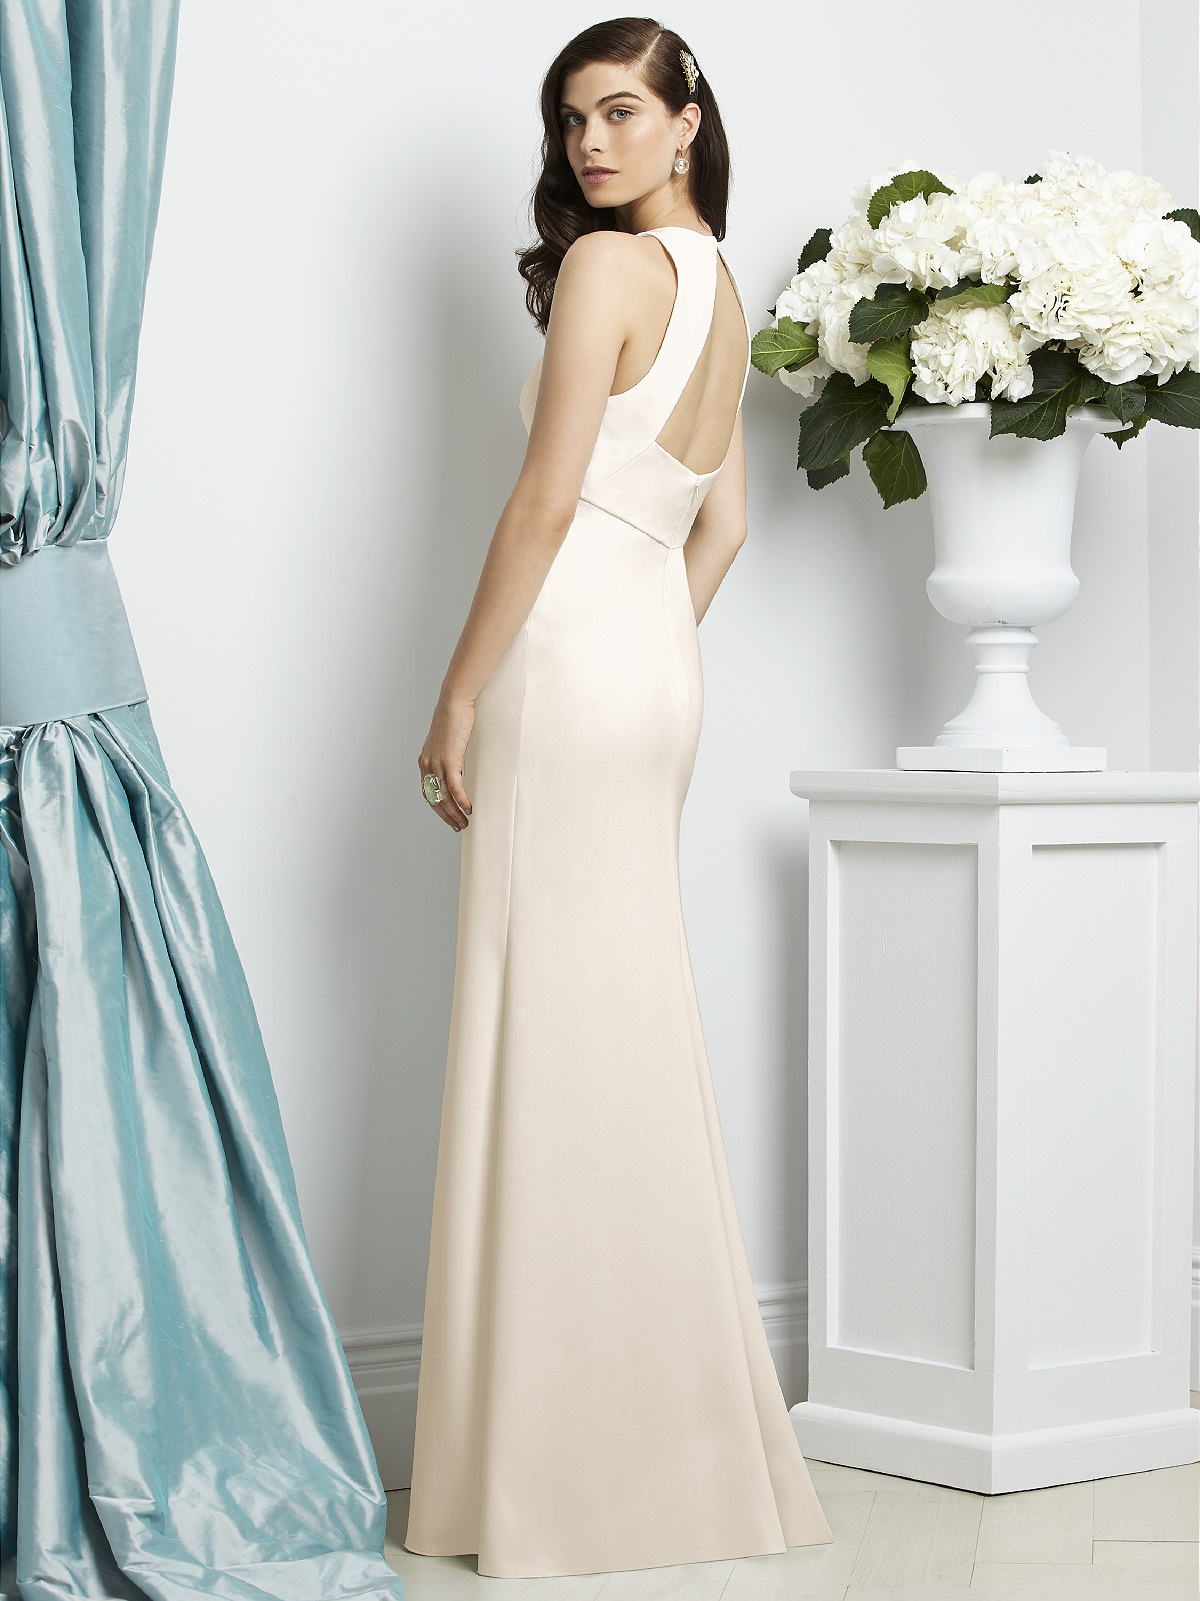 Dessy bridesmaid dresses reviews images braidsmaid dress dessy bridesmaid dressesdessy dresses 2938dessy collectionthe dessy bridesmaid dresses dessy 2938 ombrellifo images ombrellifo Choice Image